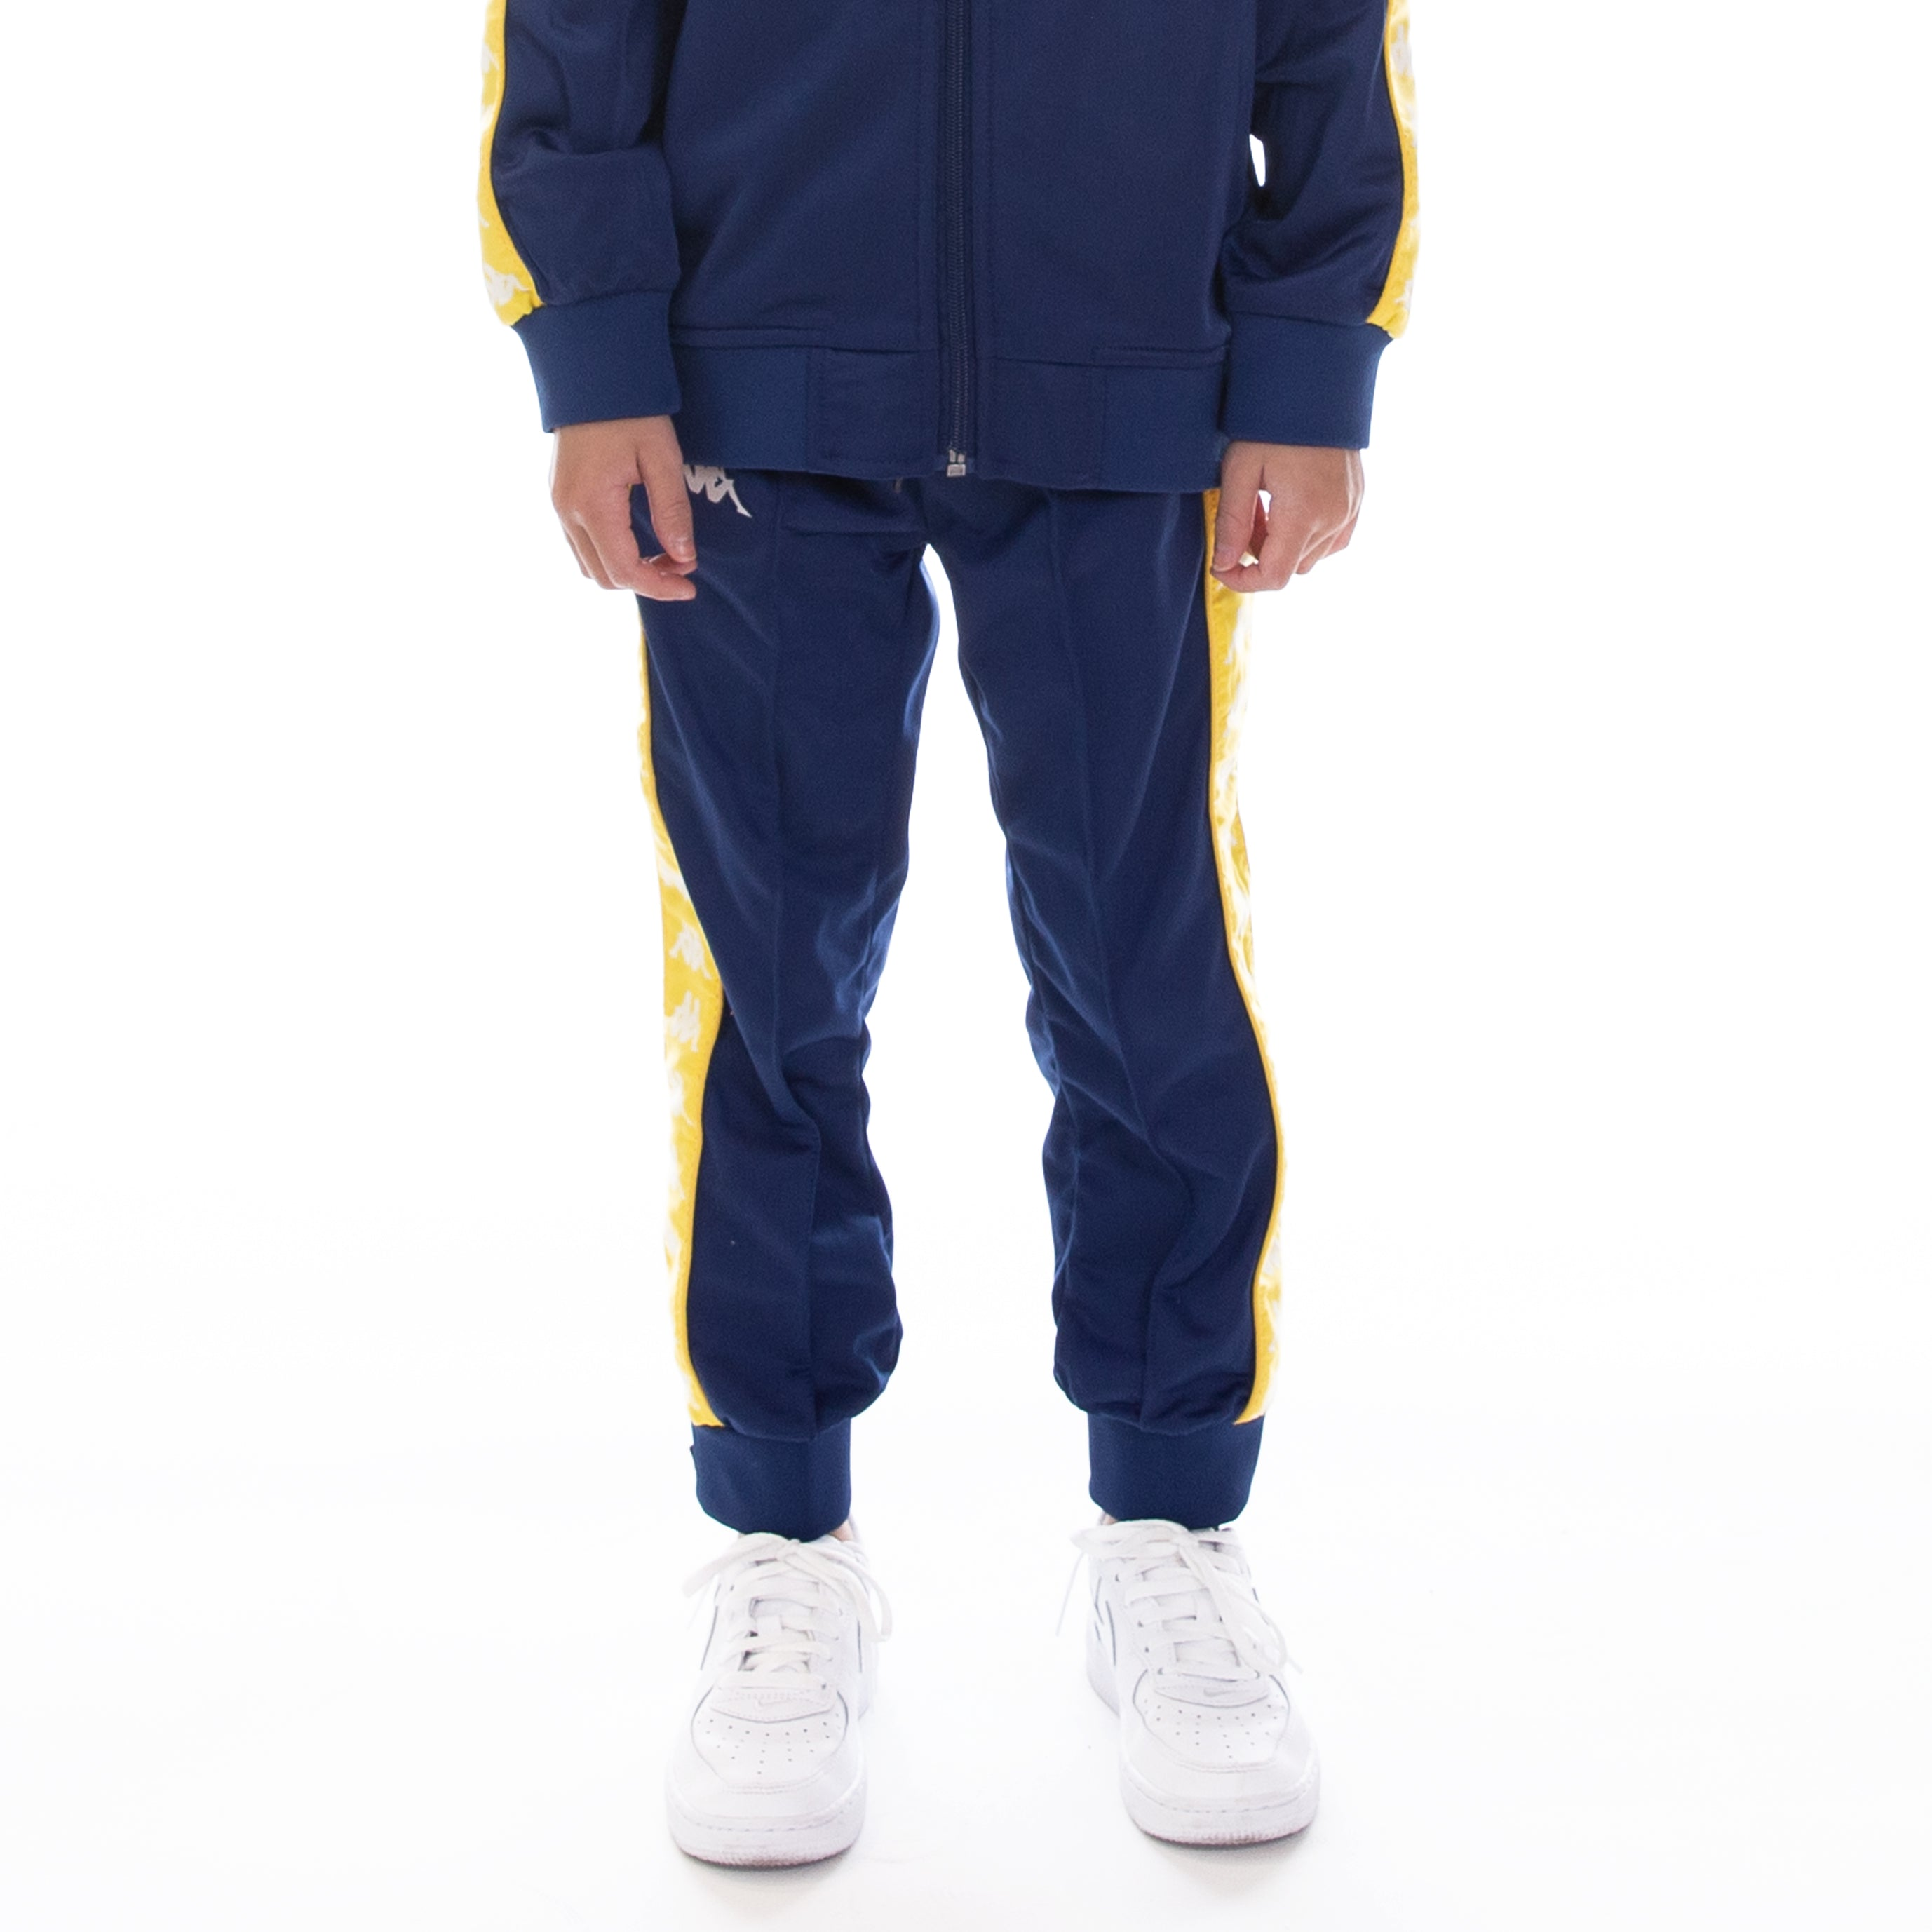 Kids 222 Banda Rastoriazz Trackpants